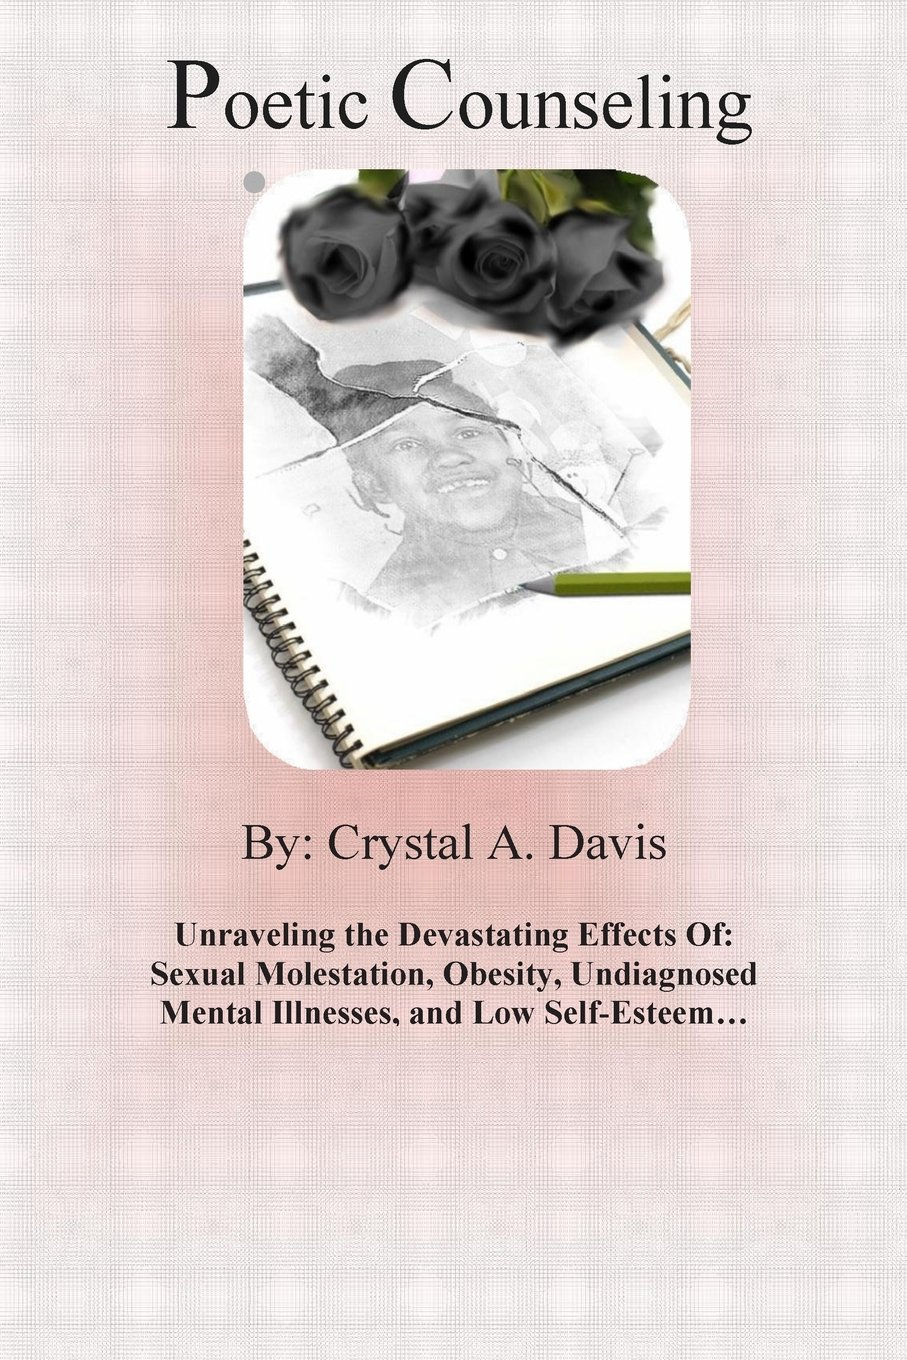 Download Poetic Counseling:: Unraveling the Devastating Effects of: Sexual Molestation, Obesity, Undiagnosed Mental Illnesses, and Low Self-Esteem... (Volume 1) pdf